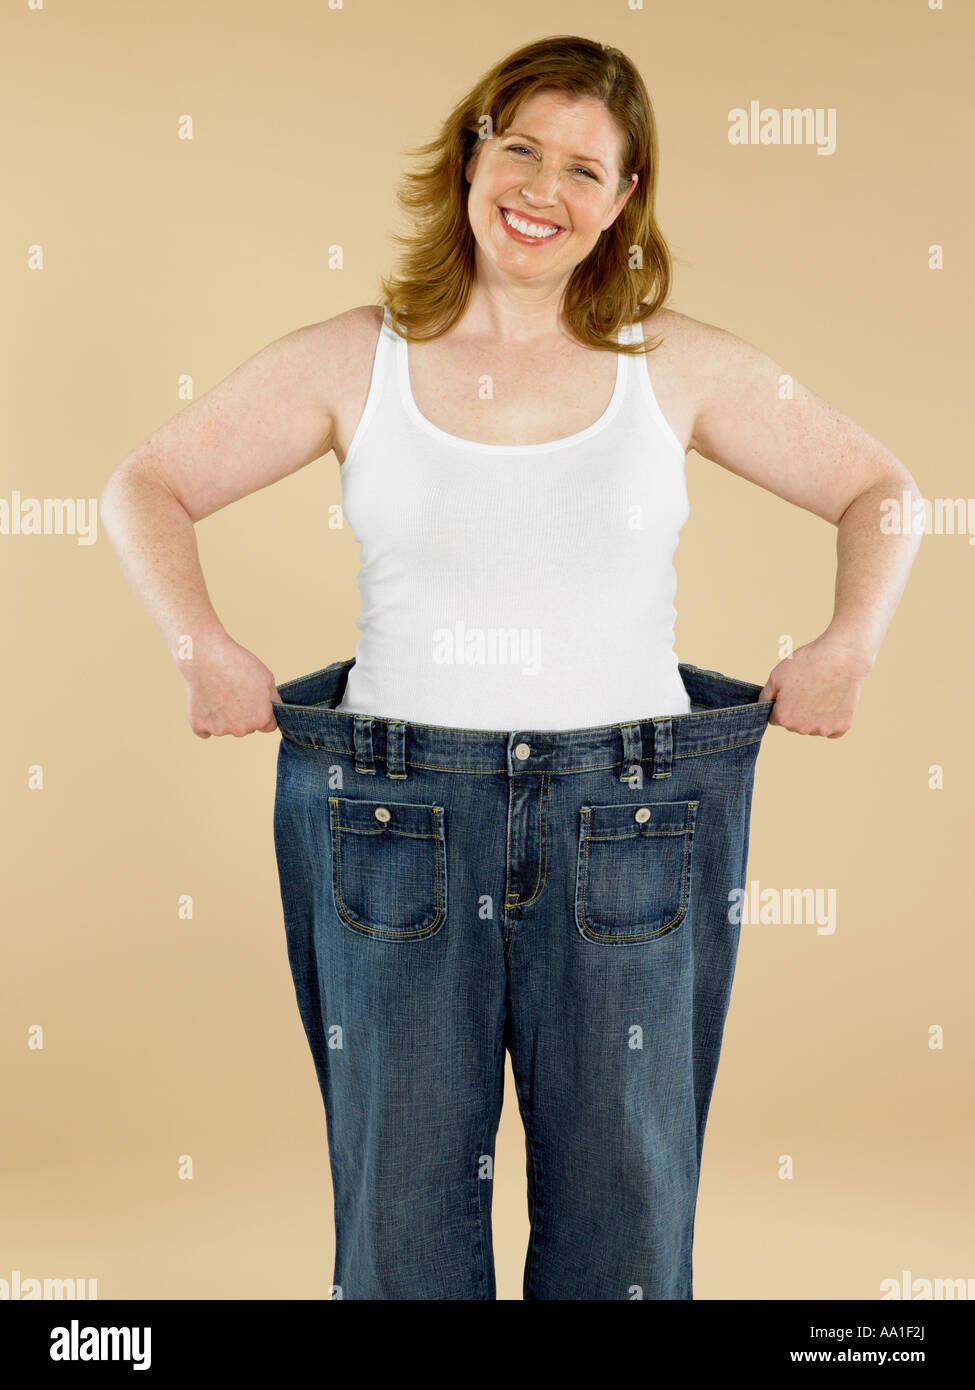 Woman with loose jeans - Stock Image